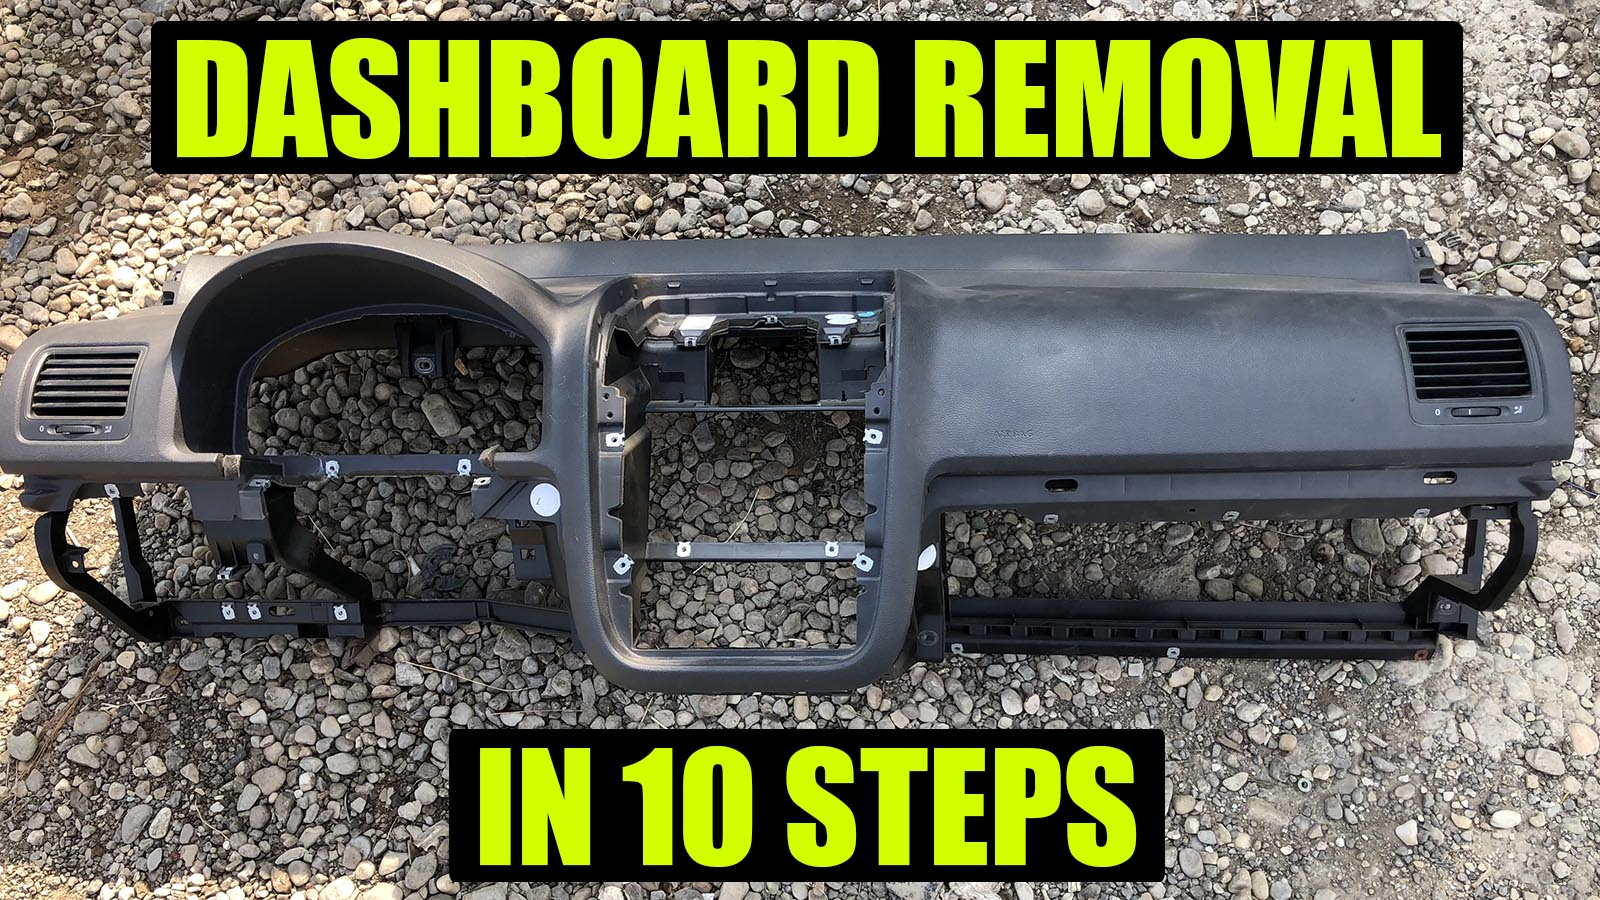 How to remove dashboard on VW Golf Mk5, Rabbit, Jetta, GTI in 10 steps